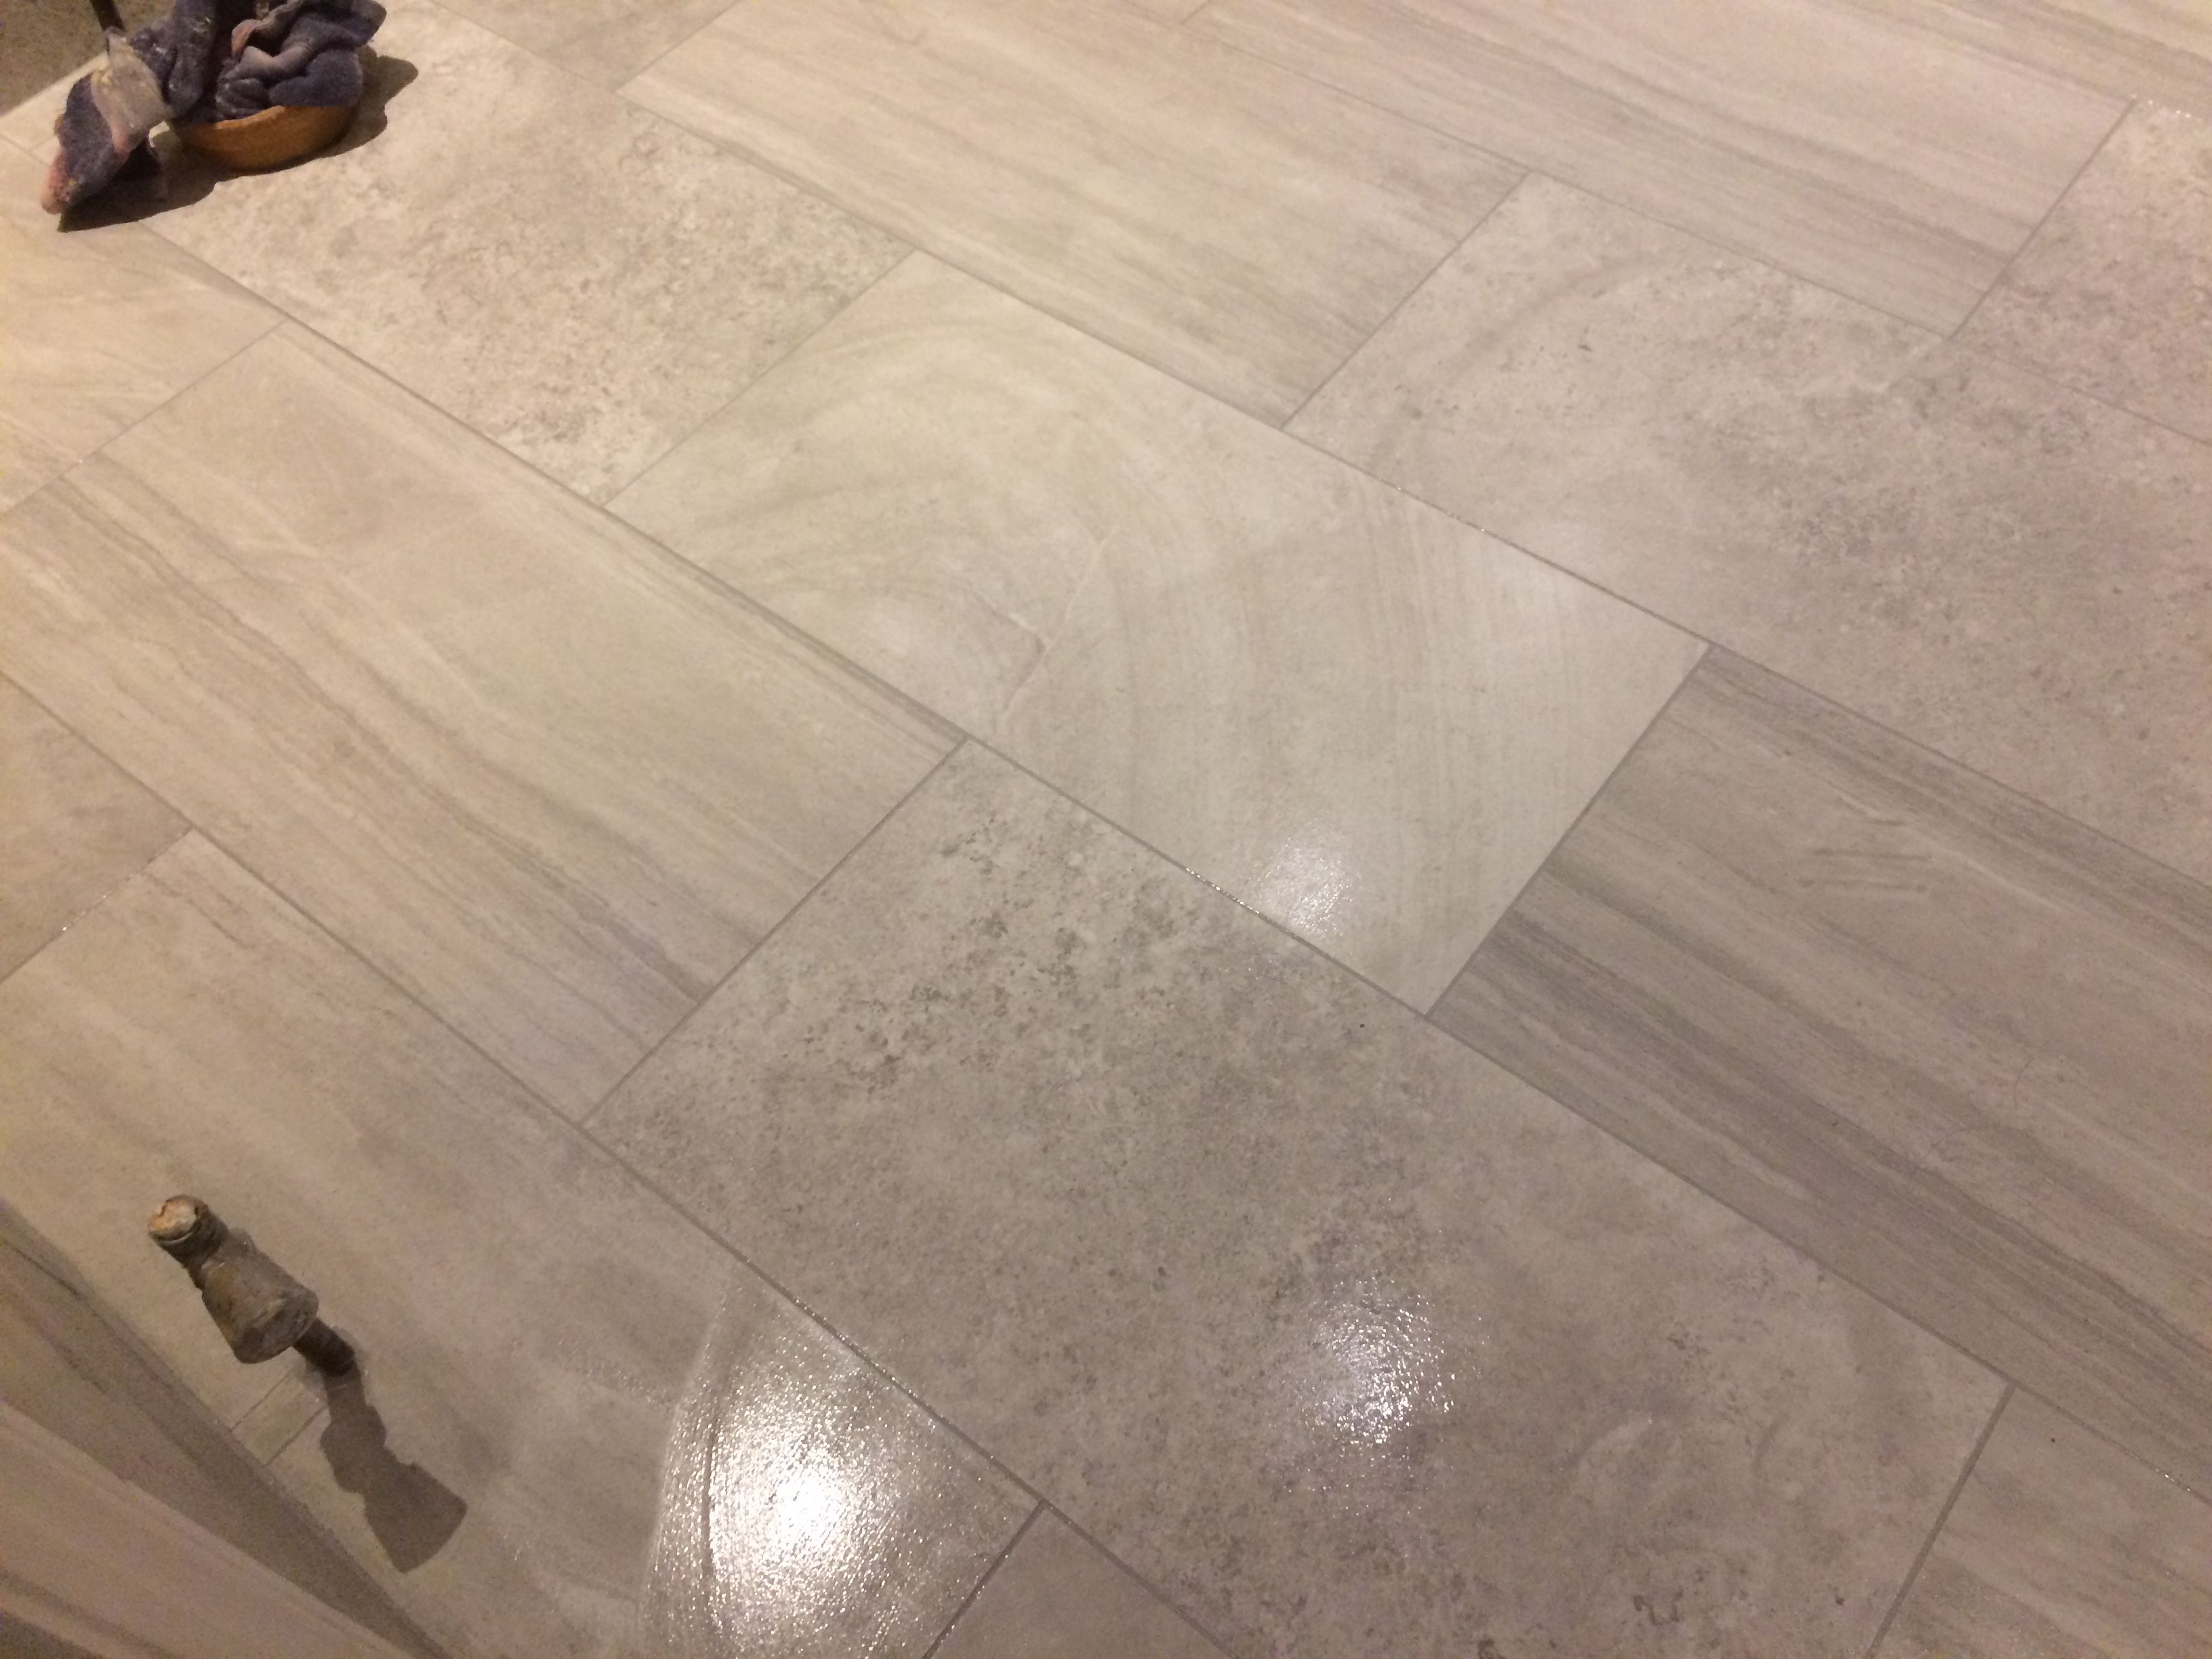 Bathroom Floor Tiling In Diss Norfolk These Floor Tiles My Customer Purchased Are A 300 X 600 Porcelain Ti Tile Floor Bathroom Floor Tiles Bathroom Flooring